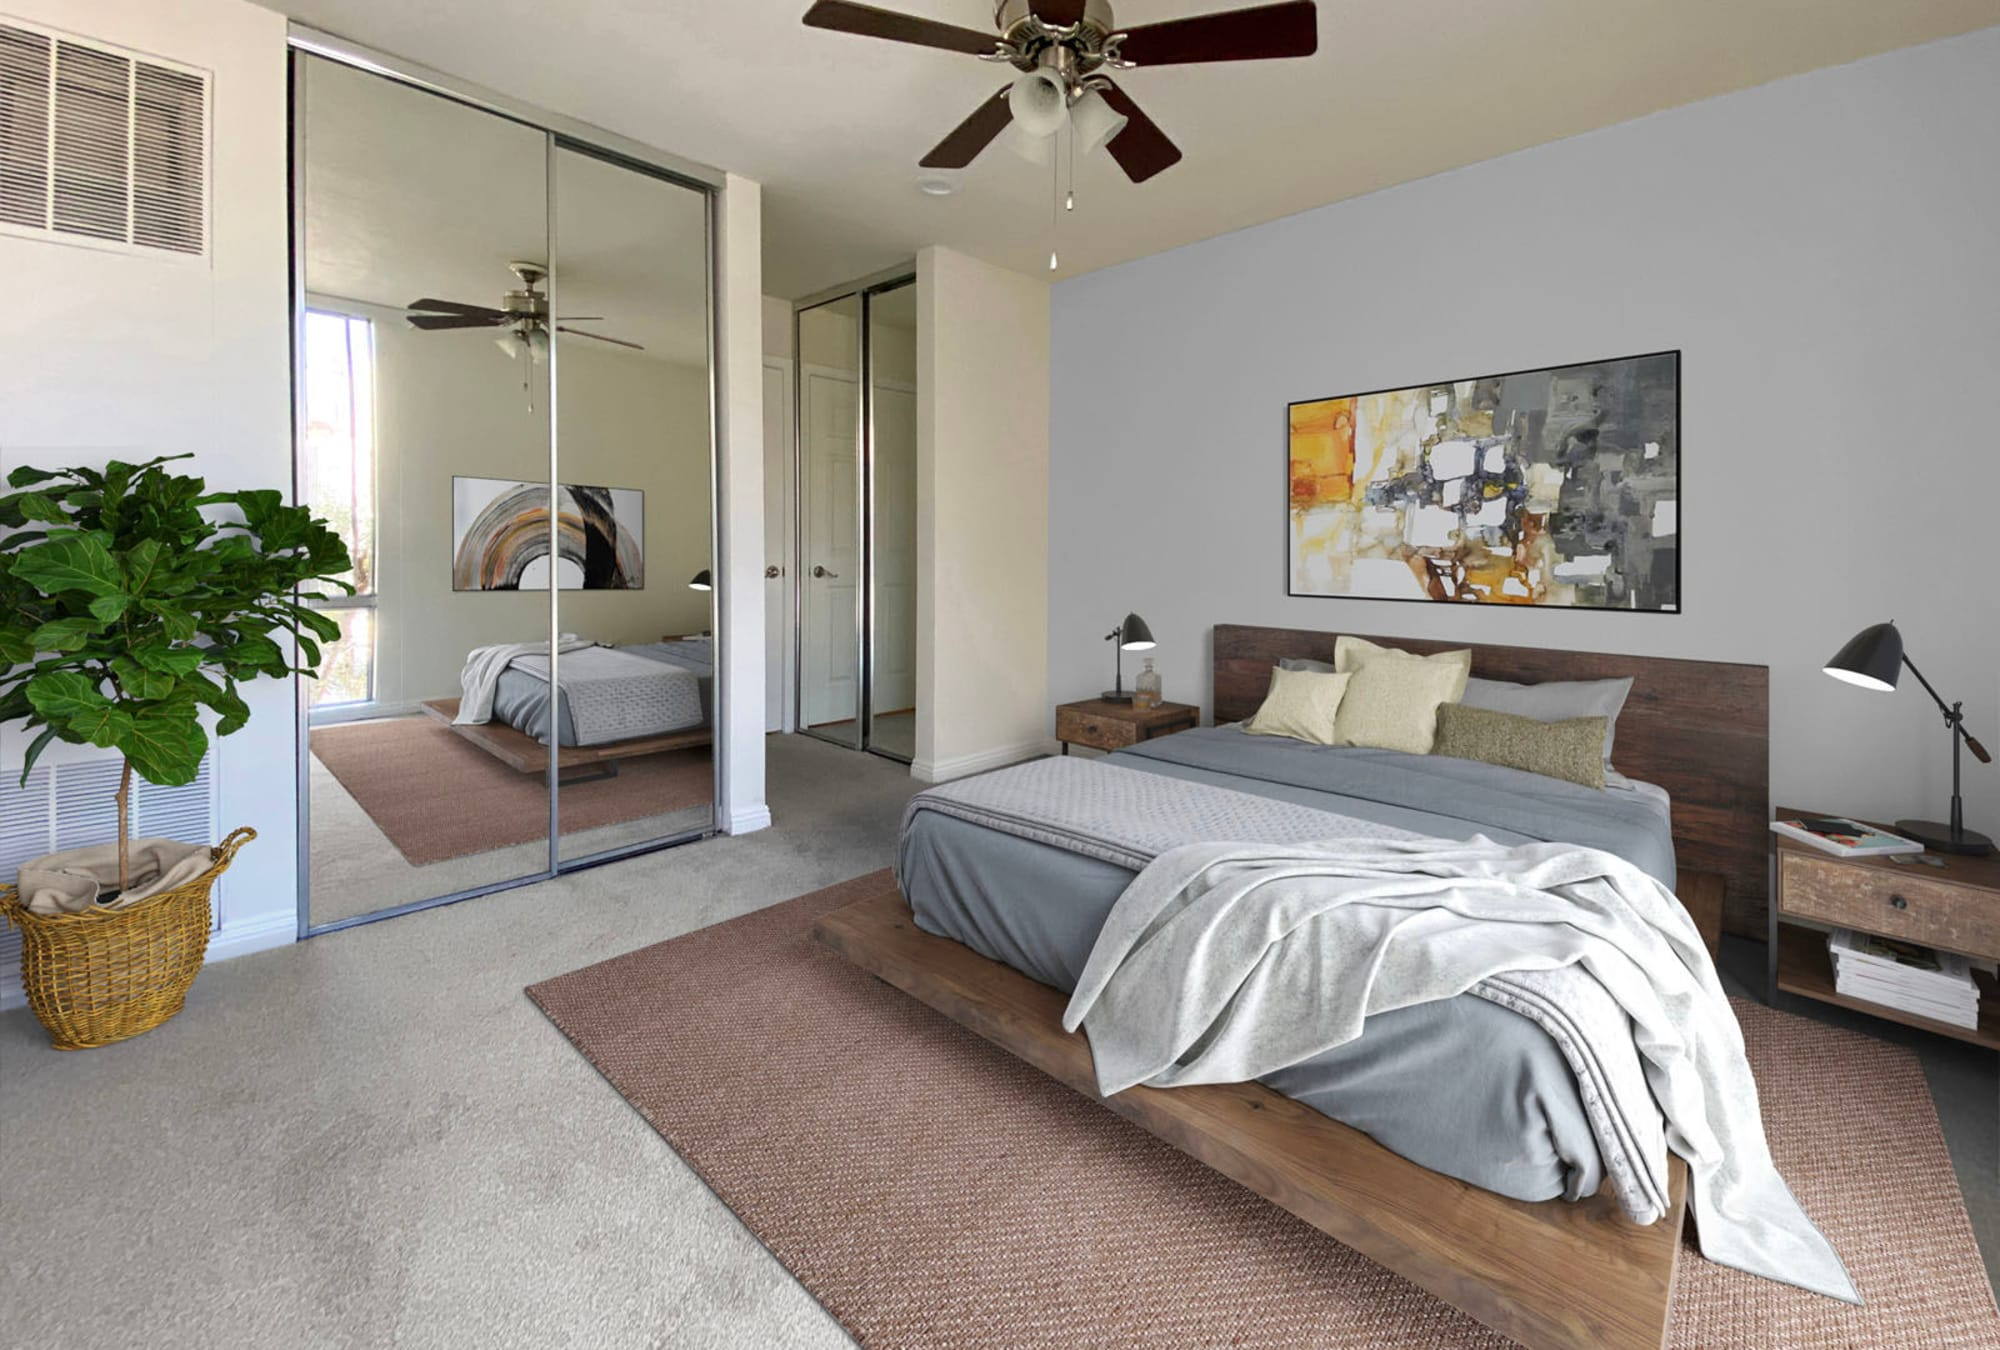 Mirrored closet doors and plush carpeting in a model home's bedroom at Mediterranean Village in West Hollywood, California